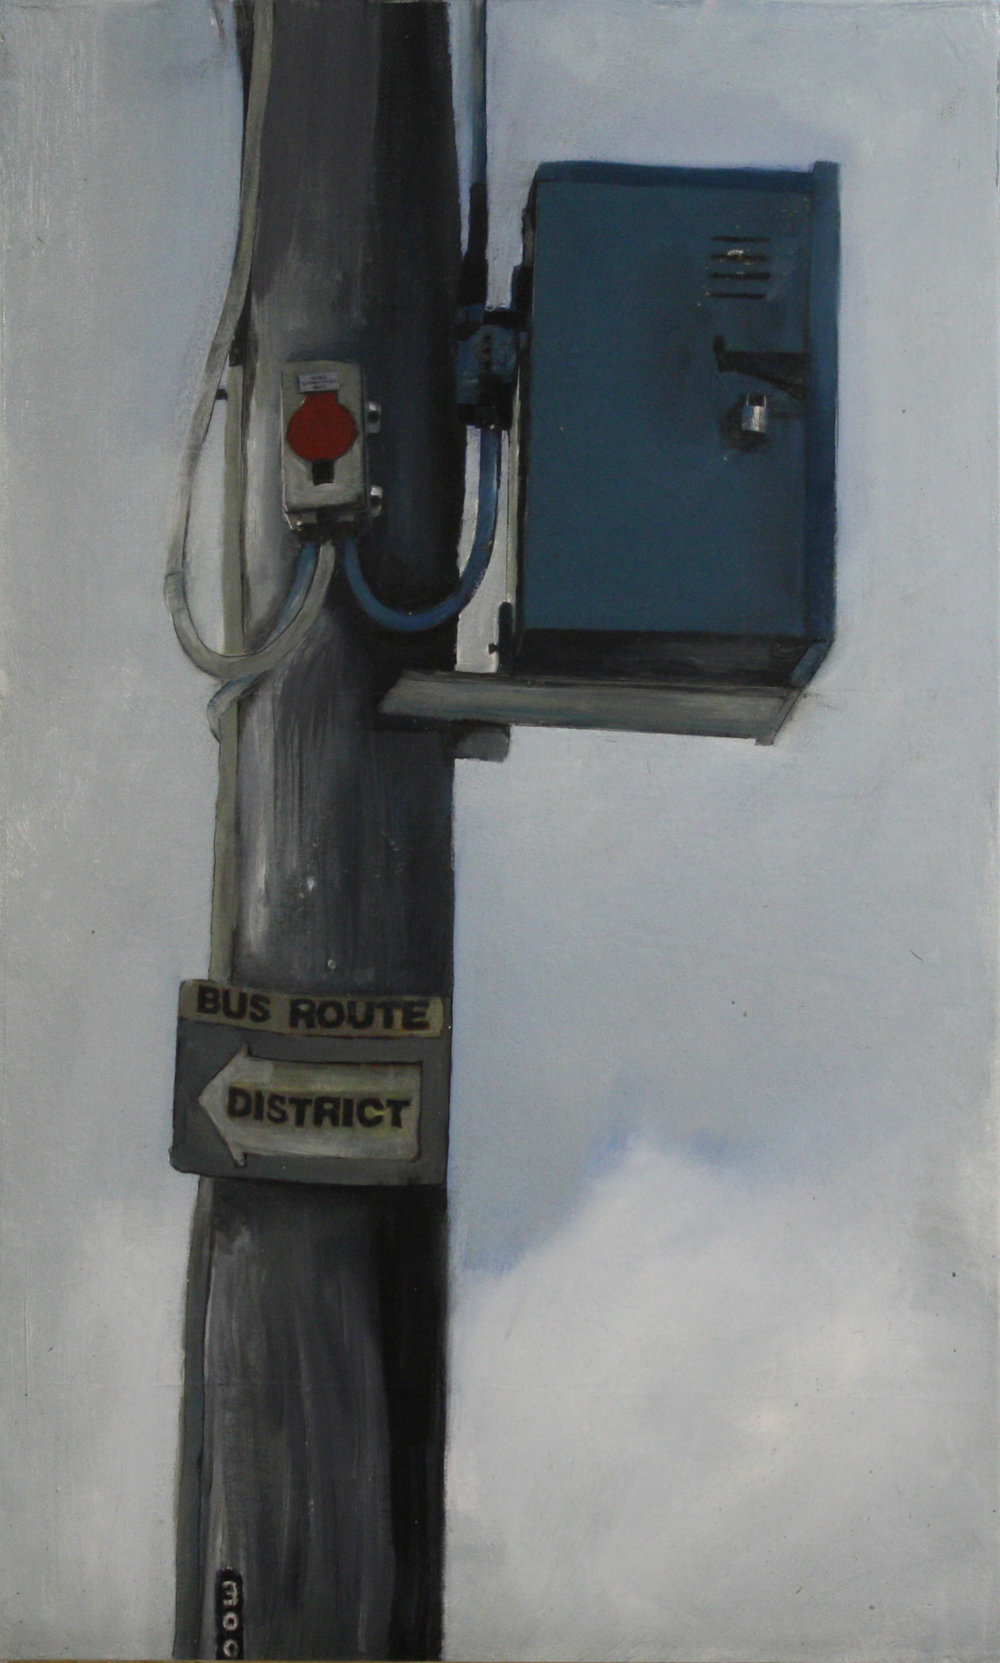 Stand Alone: 300   2011, oil on canvas  50 x 76 cm